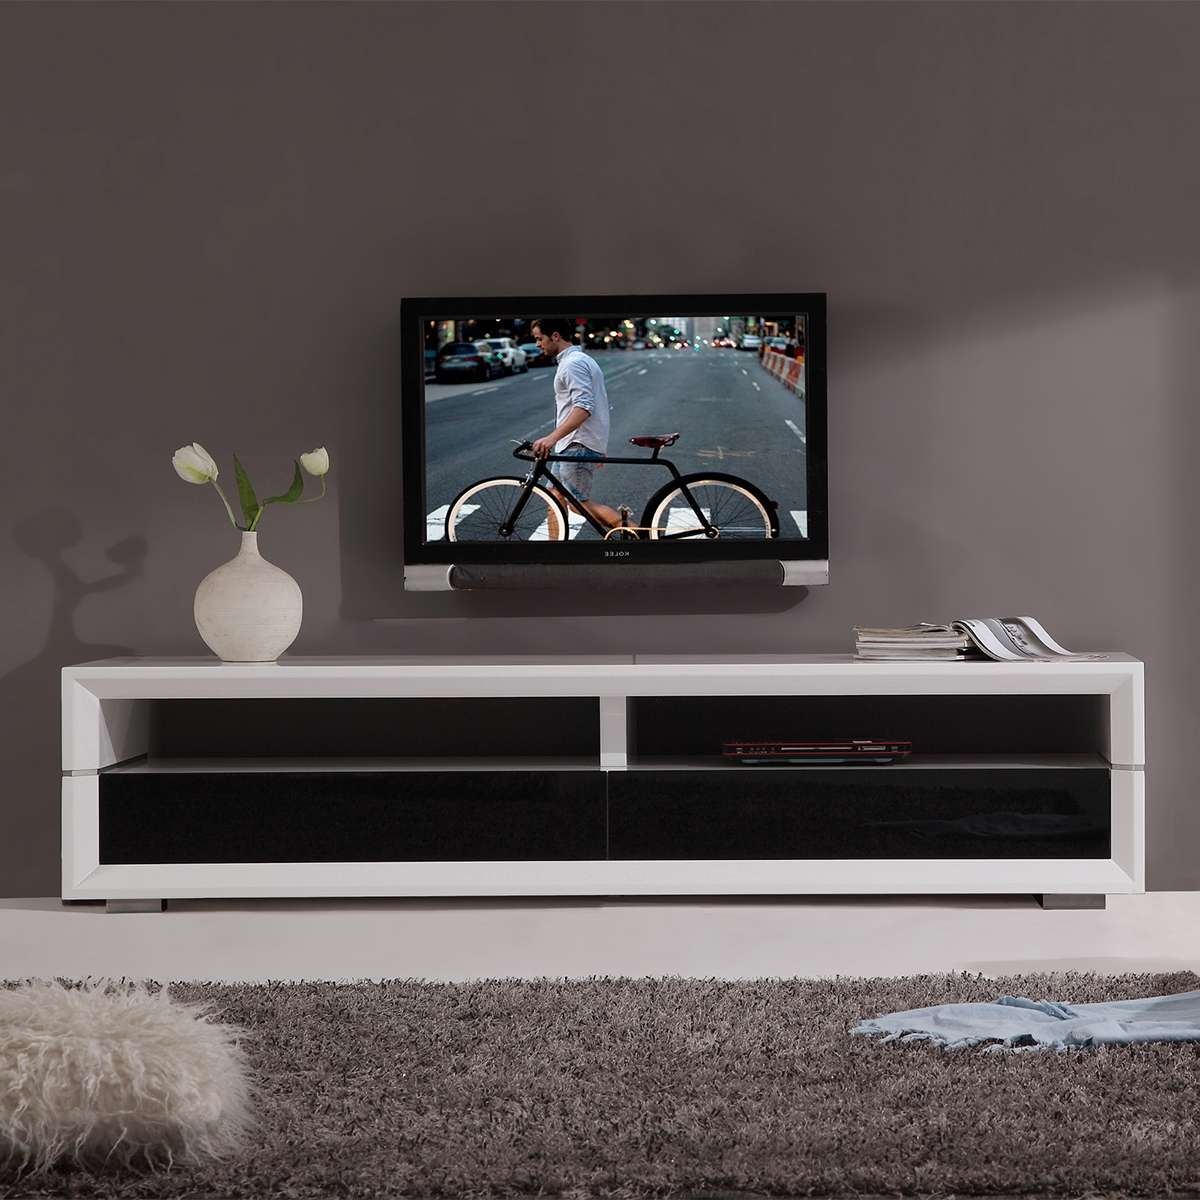 Luxury 80 Inch Tv Stands 43 About Remodel Home Remodel Ideas With Intended For 80 Inch Tv Stands (View 4 of 15)